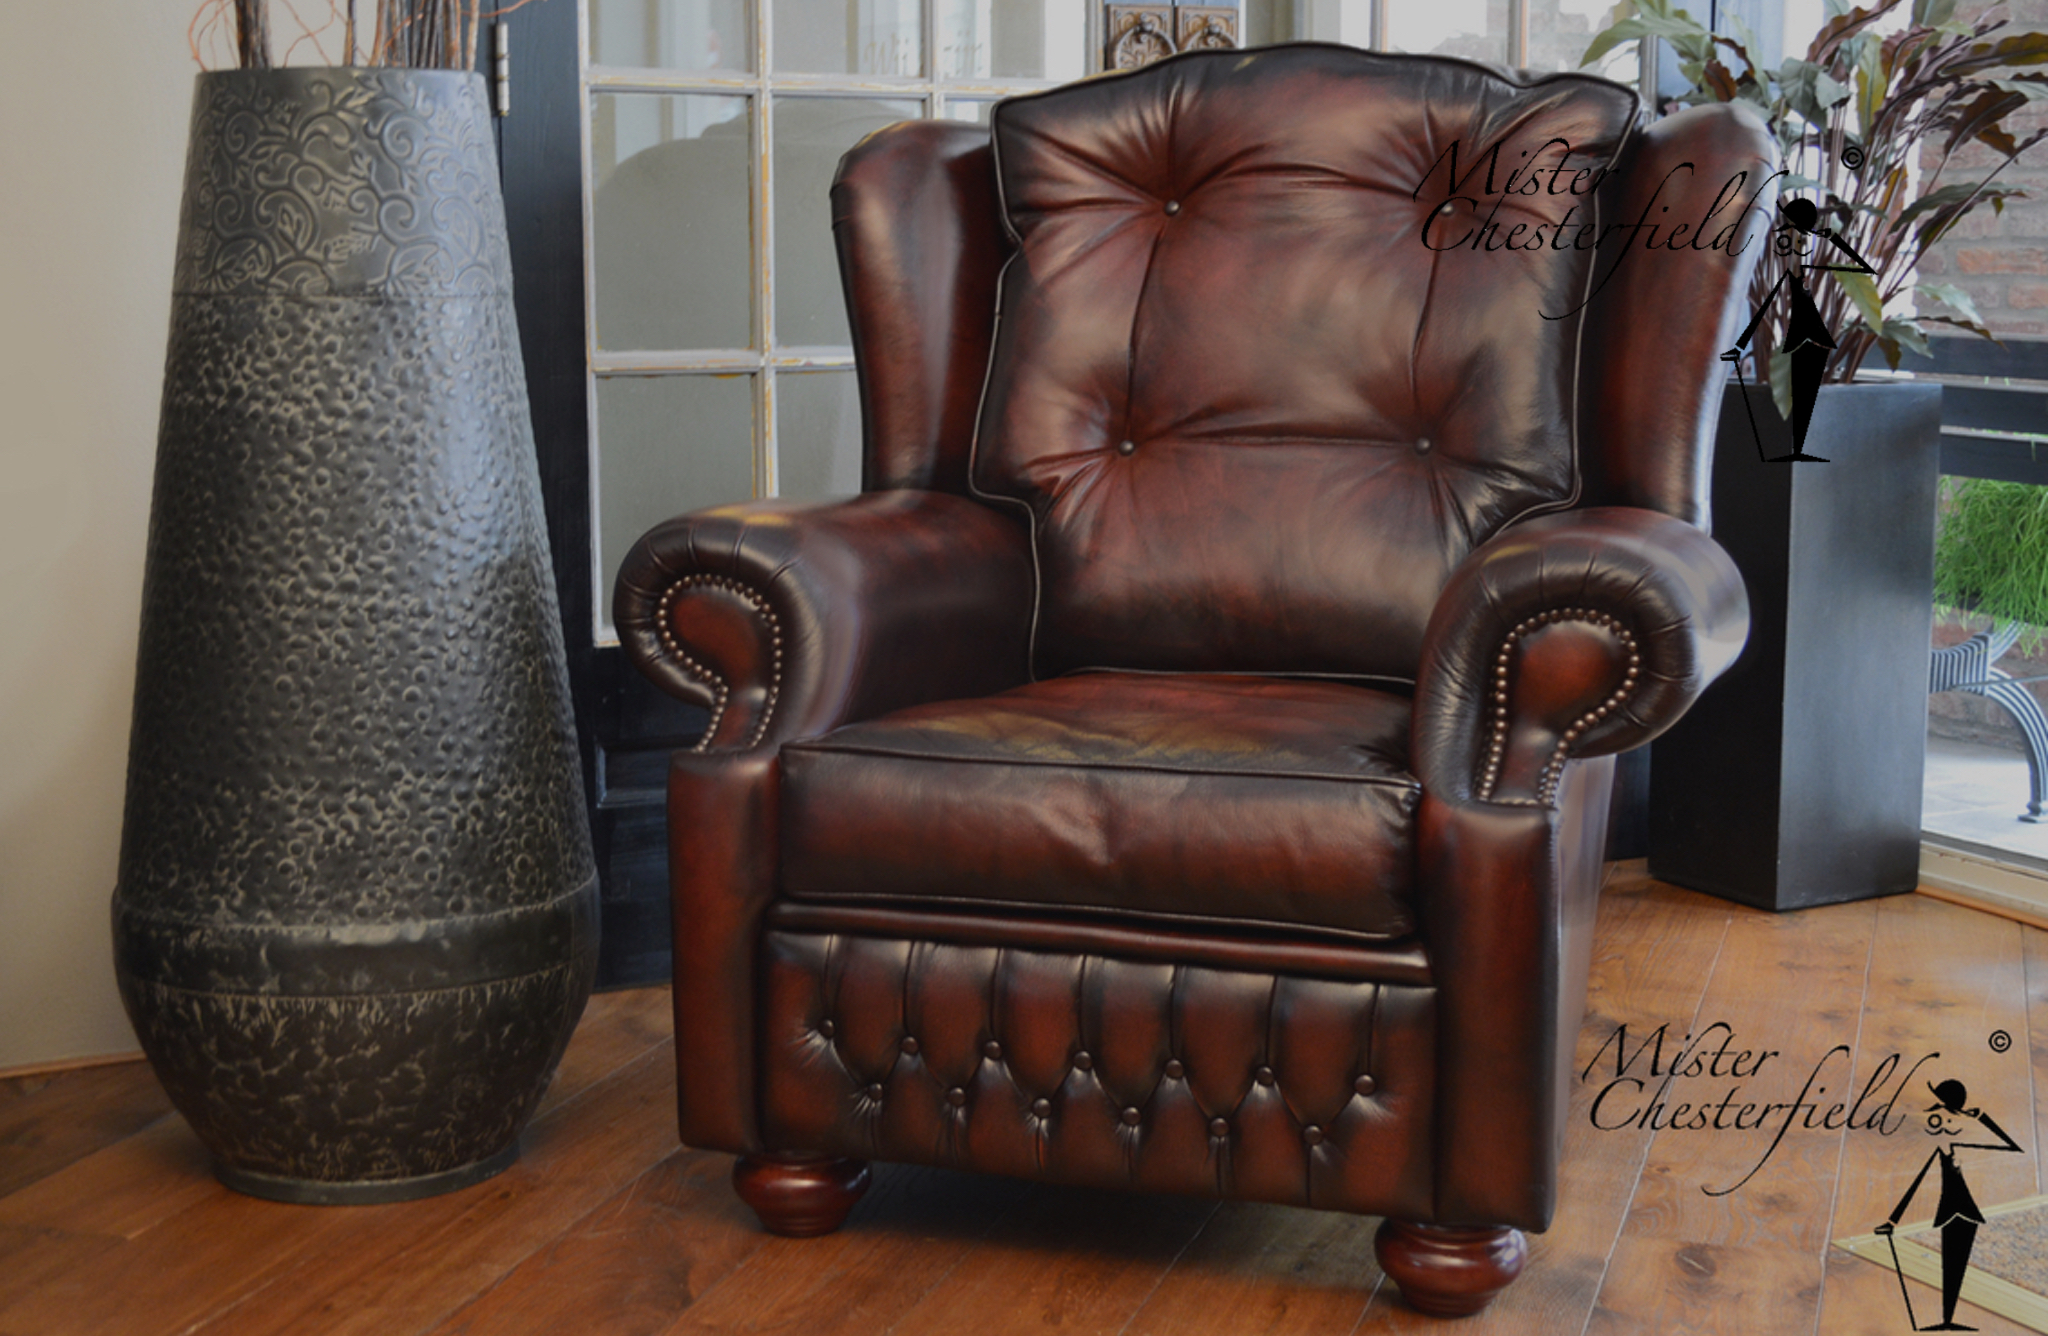 caywood_chesterfield_fauteuil